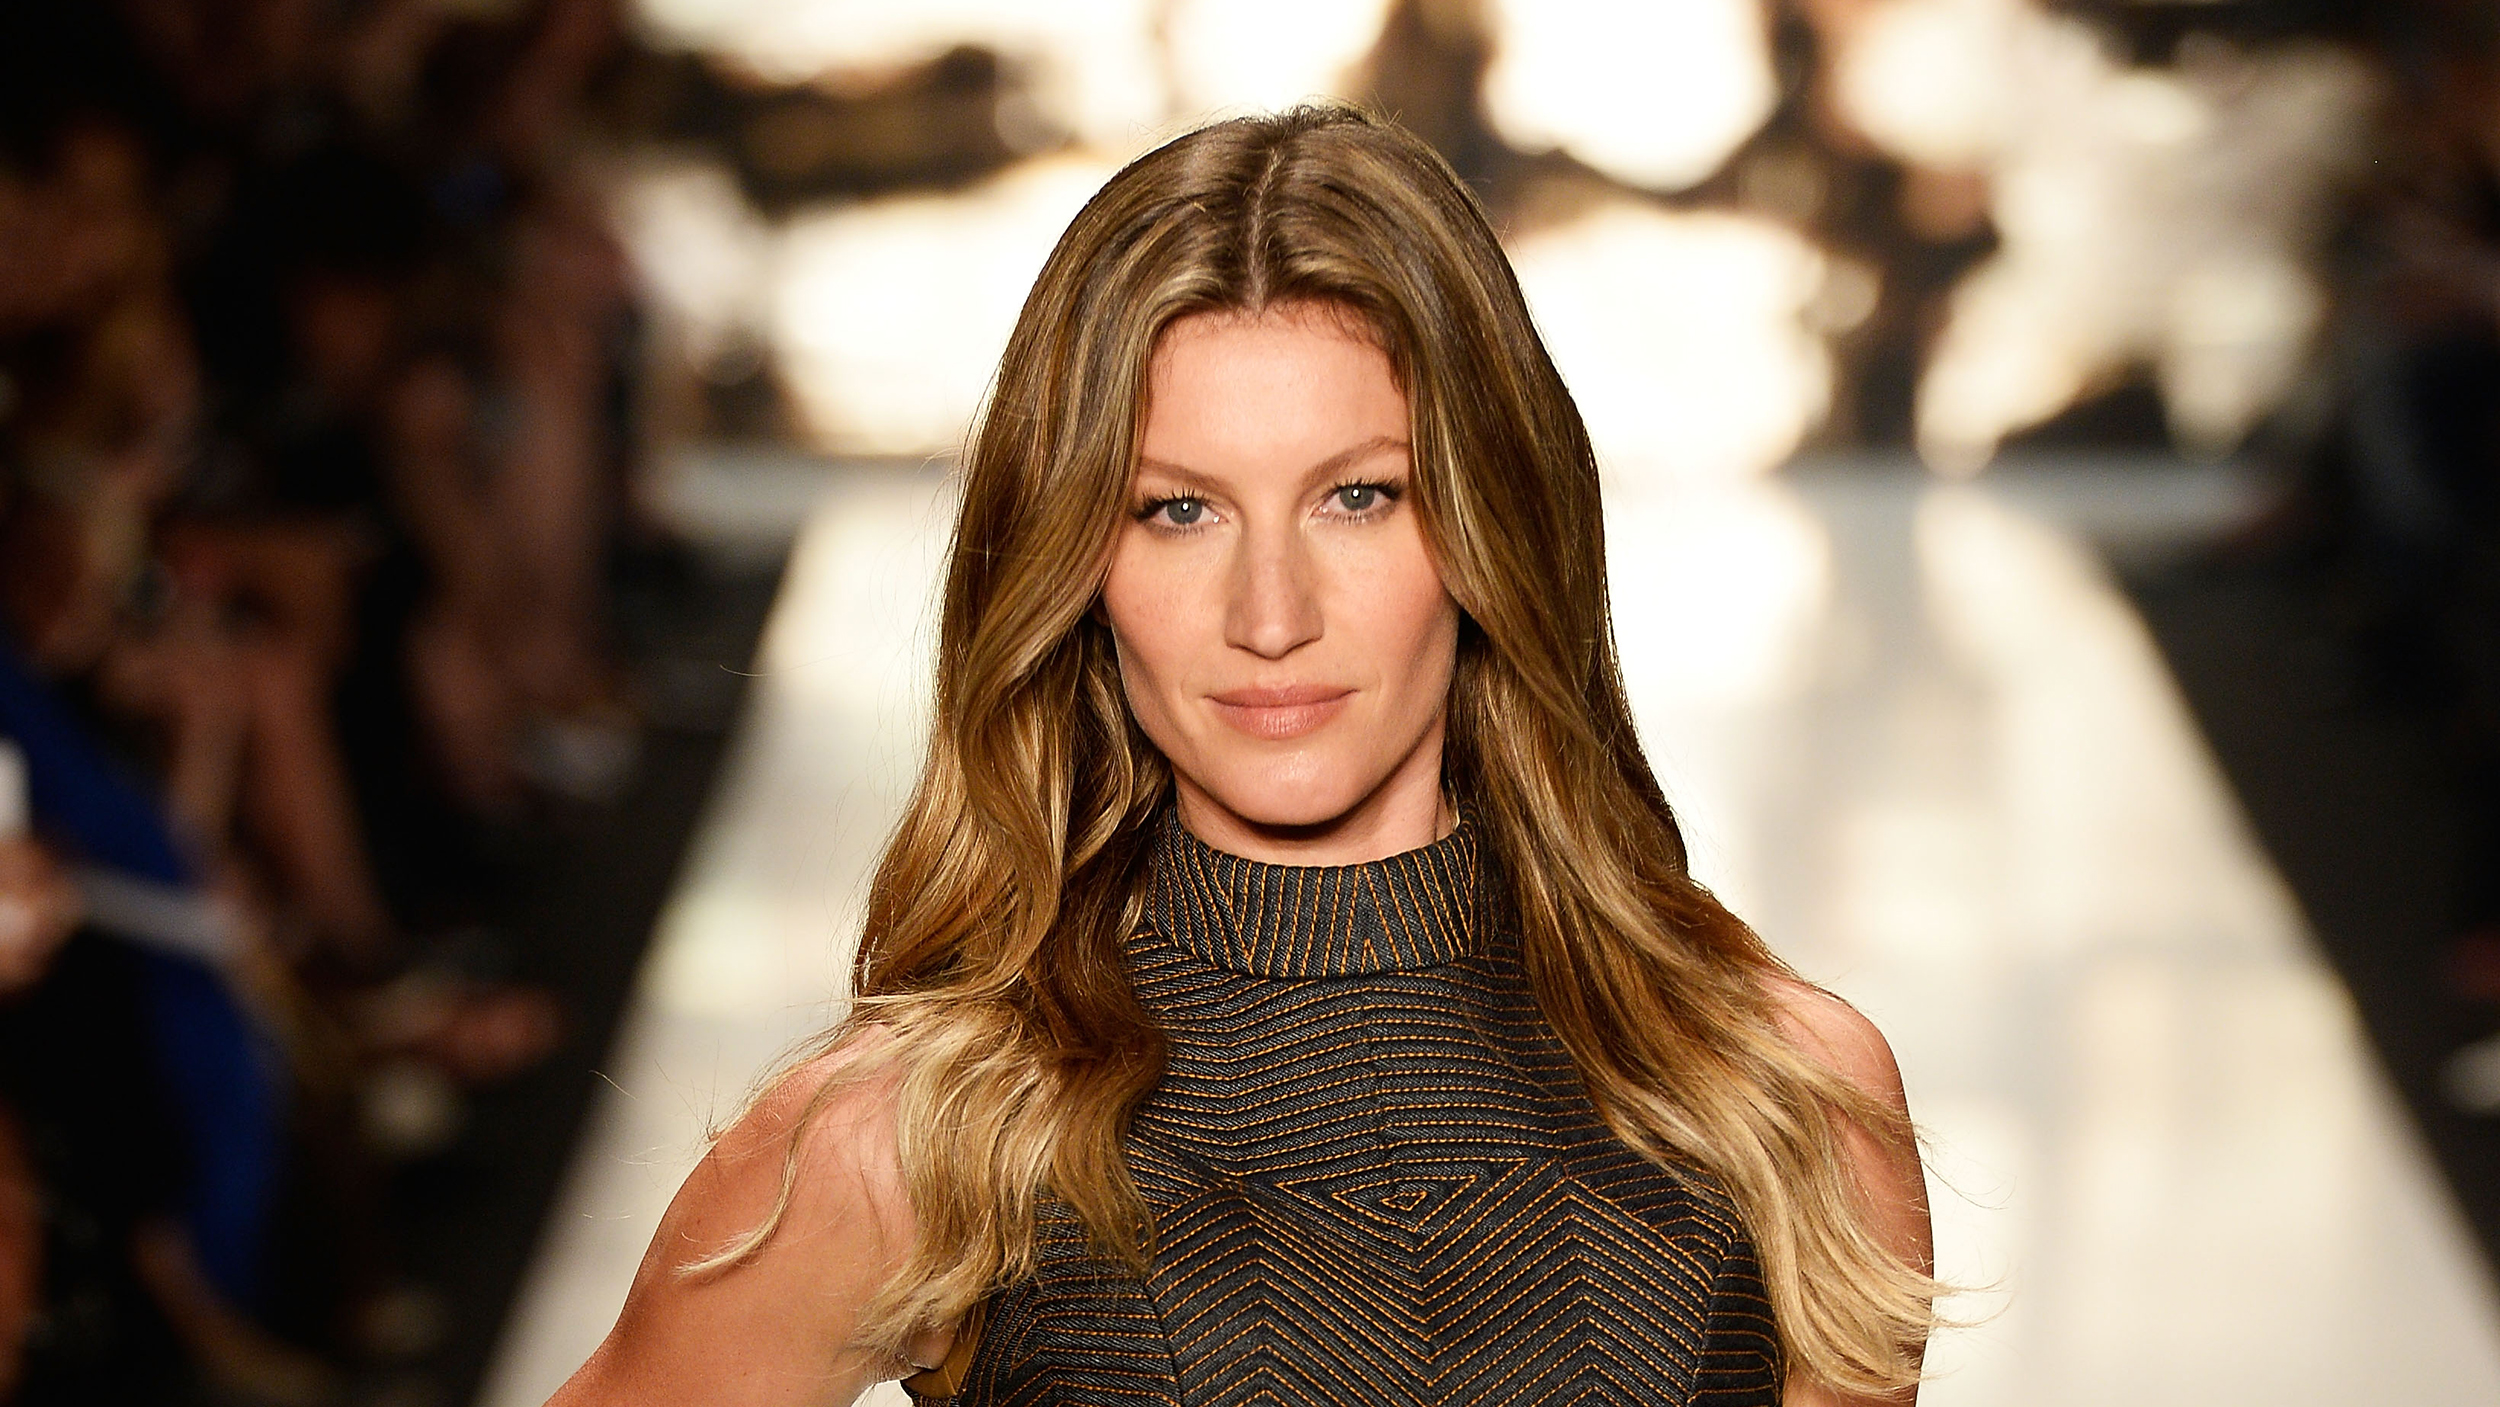 Gisele Bundchen explains why Gisele Bundchen